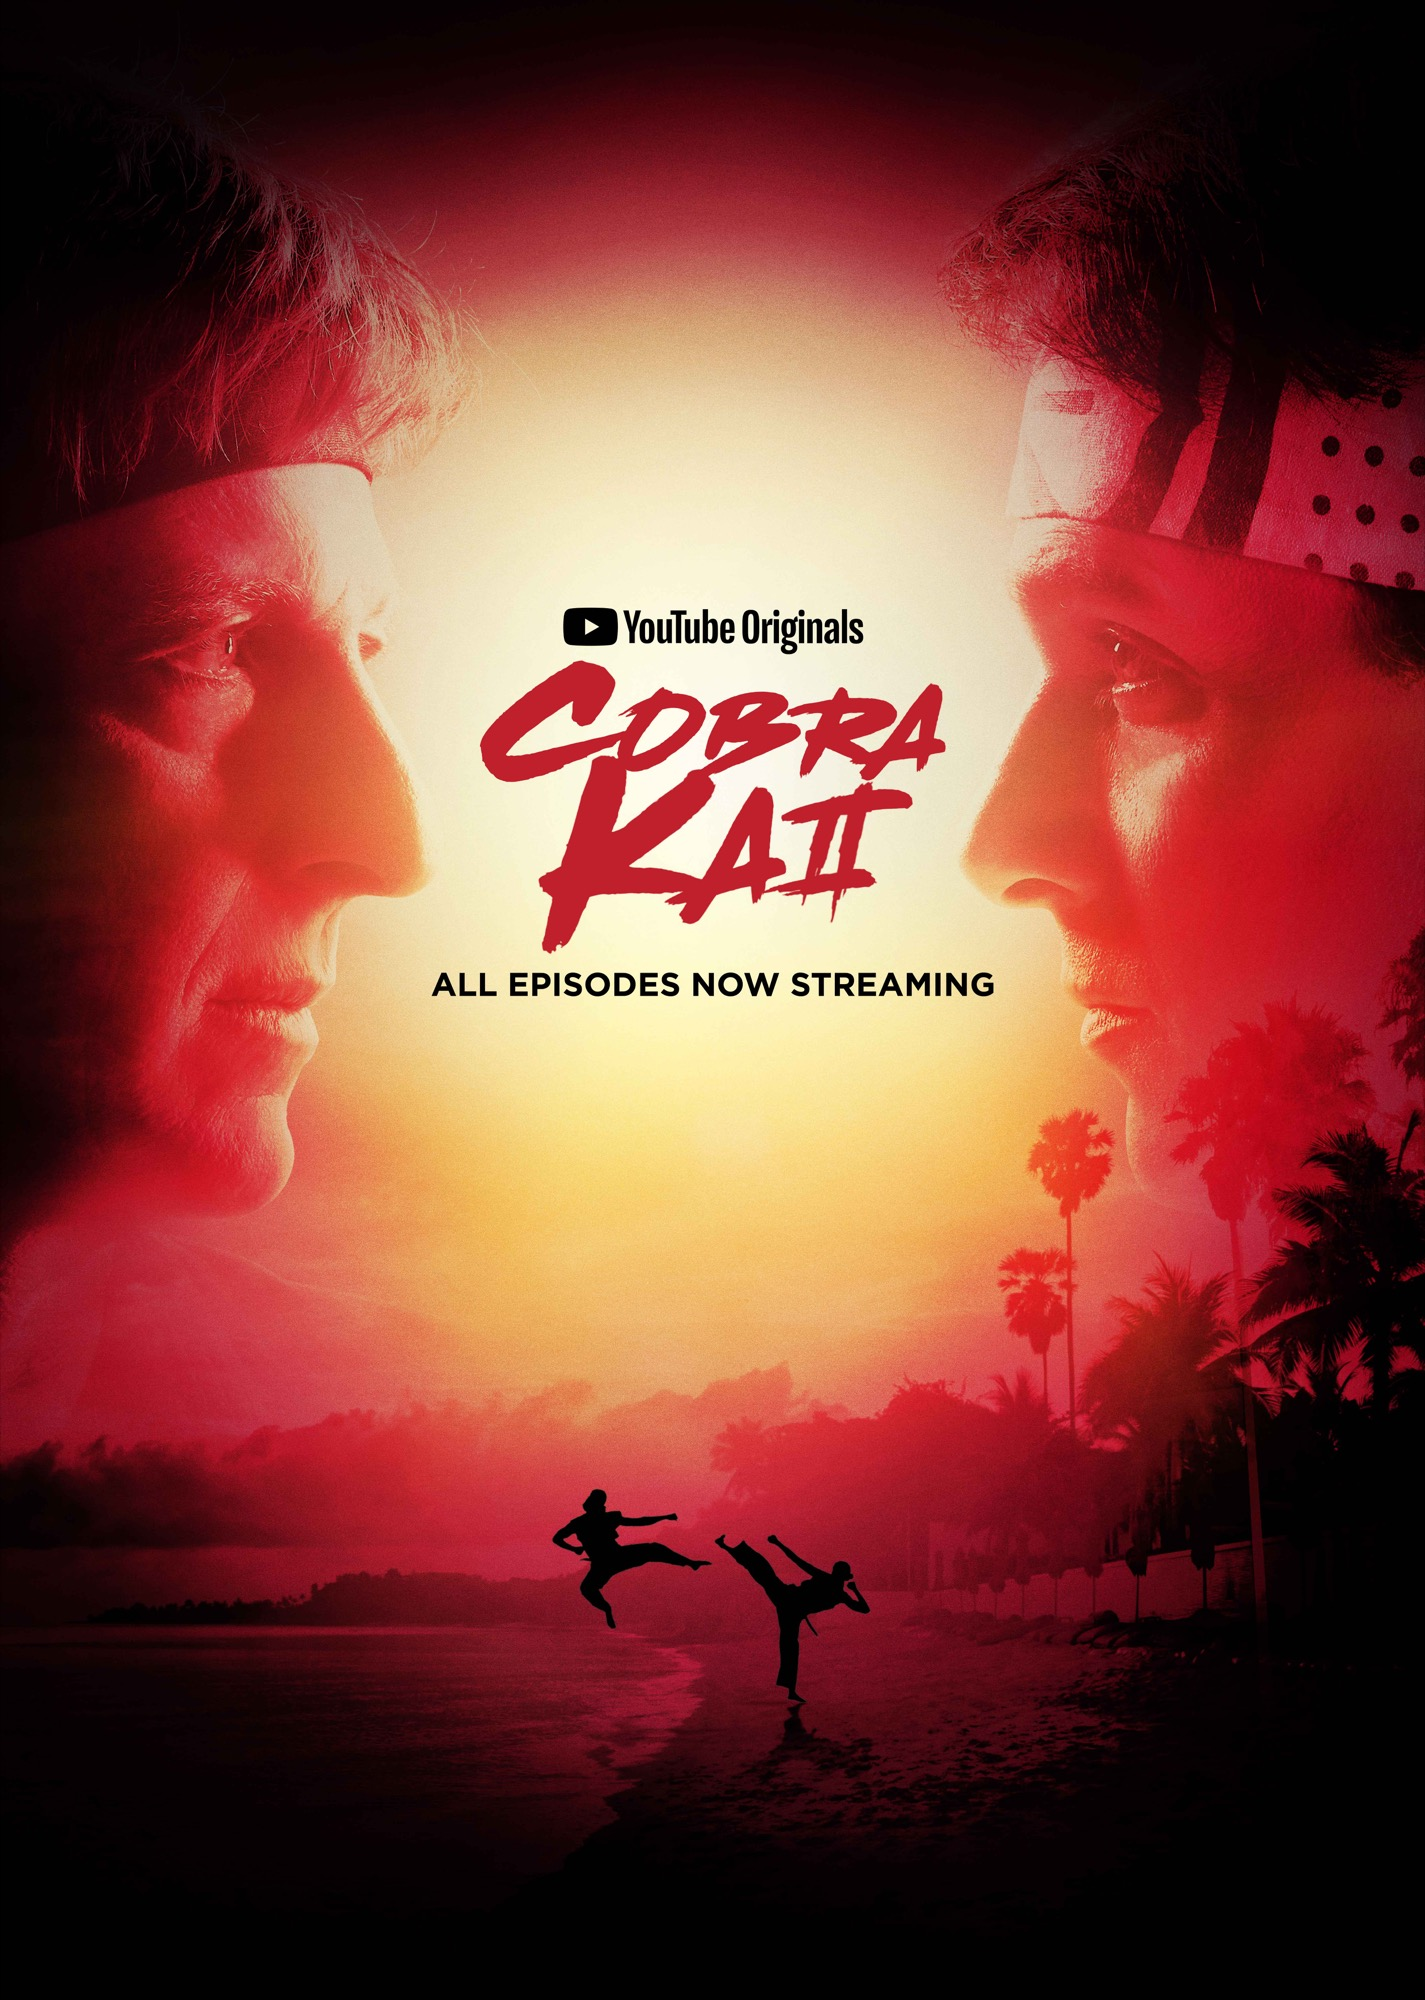 yto_cobrakai_vertical_27x40_132_v1_now_streaming.jpg